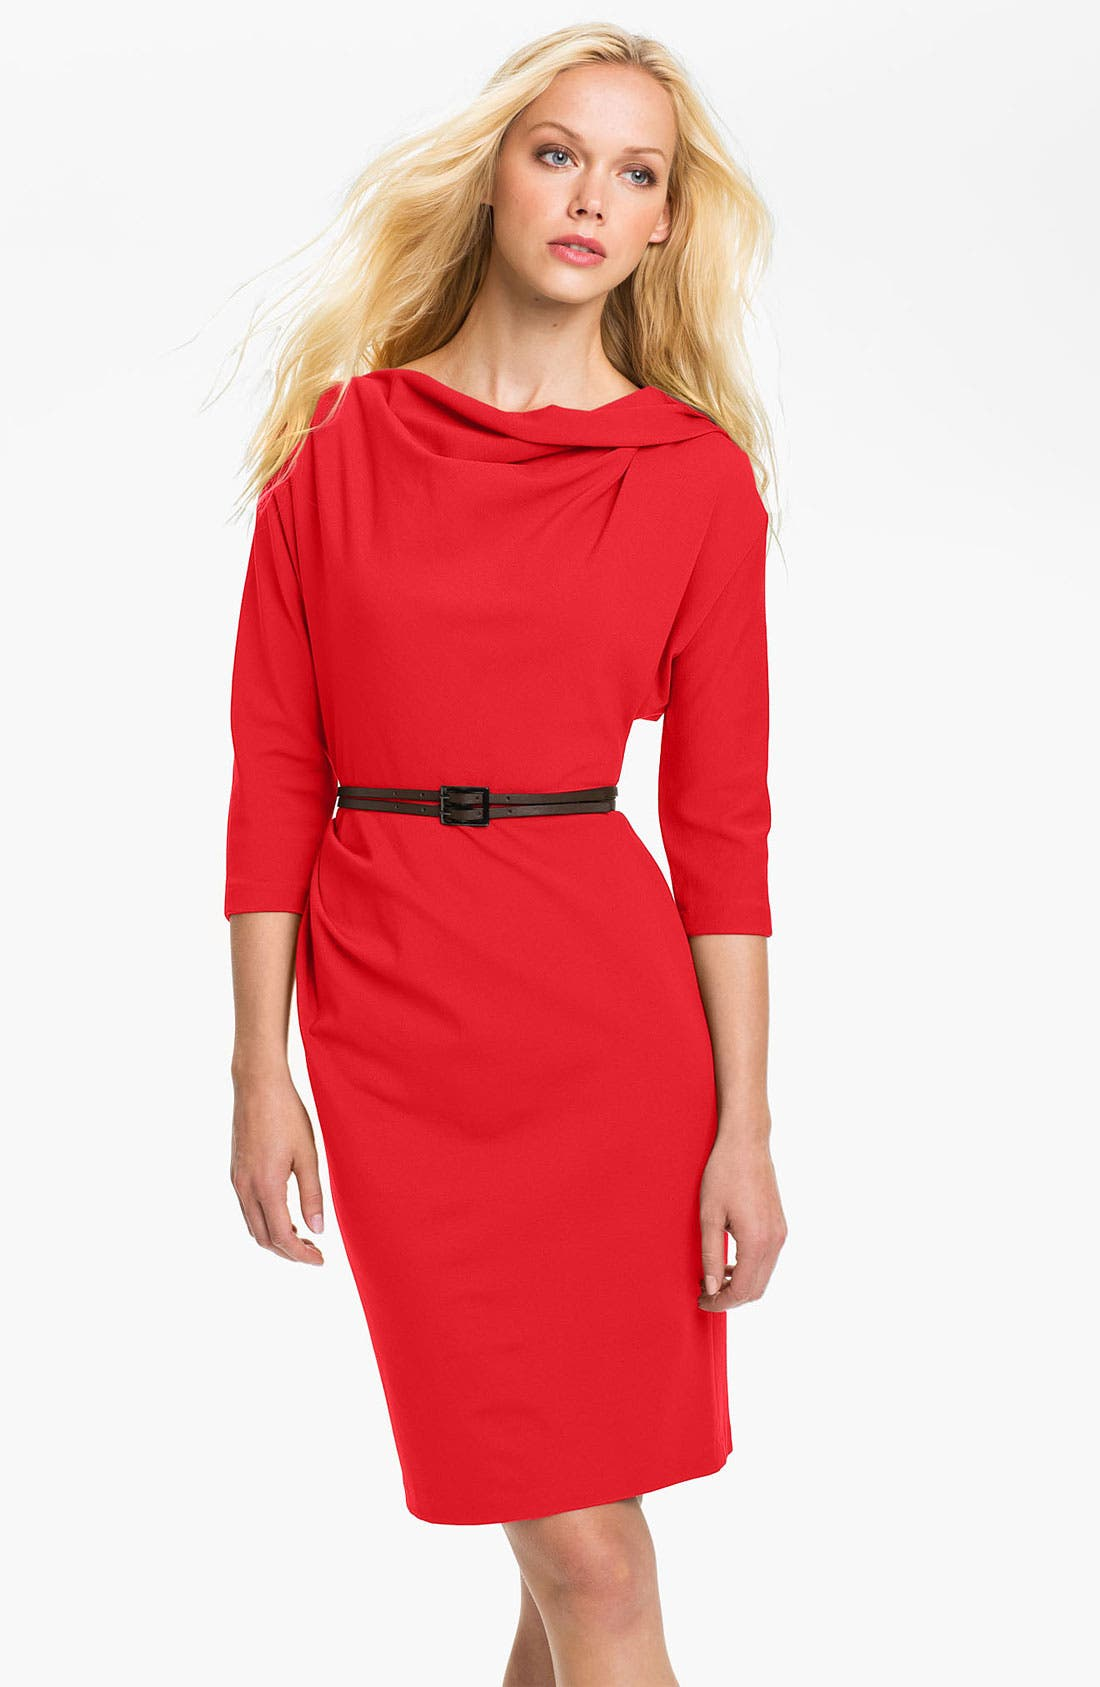 Alternate Image 1 Selected - Suzi Chin for Maggy Boutique Belted Dolman Sleeve Sheath Dress